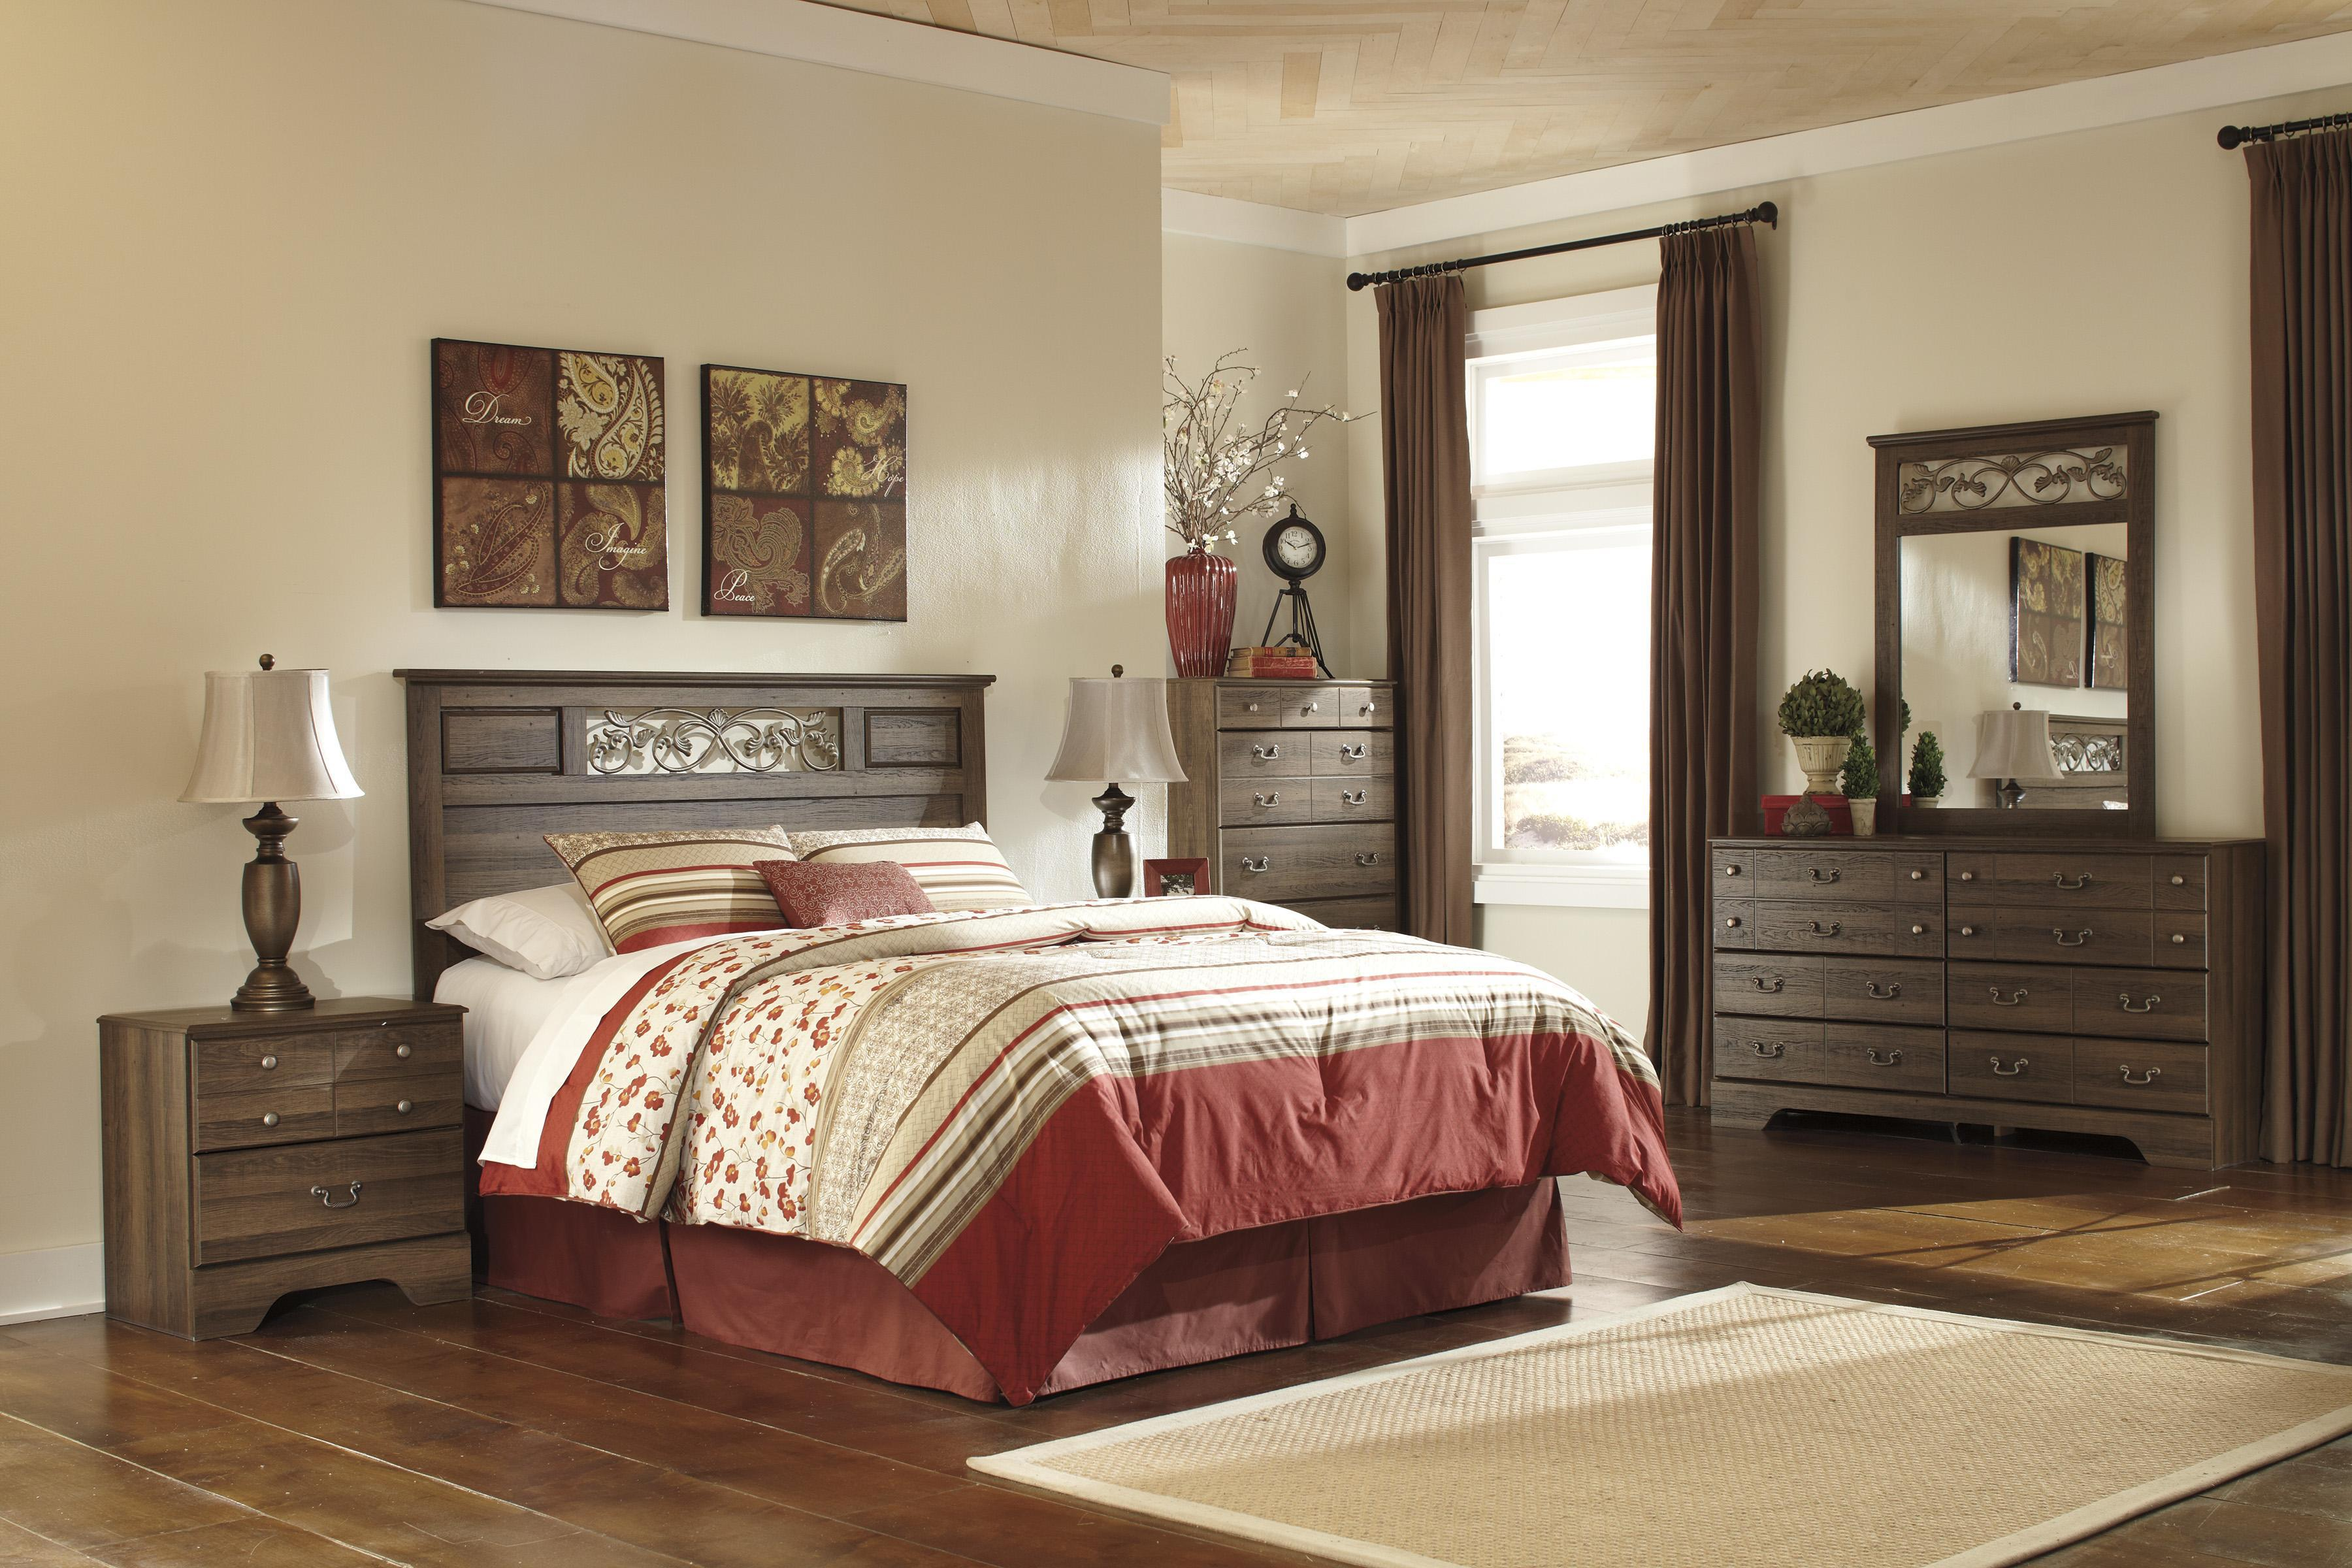 Signature Design by Ashley Allymore Queen Bedroom Group - Item Number: B216 Q Bedroom Group 5